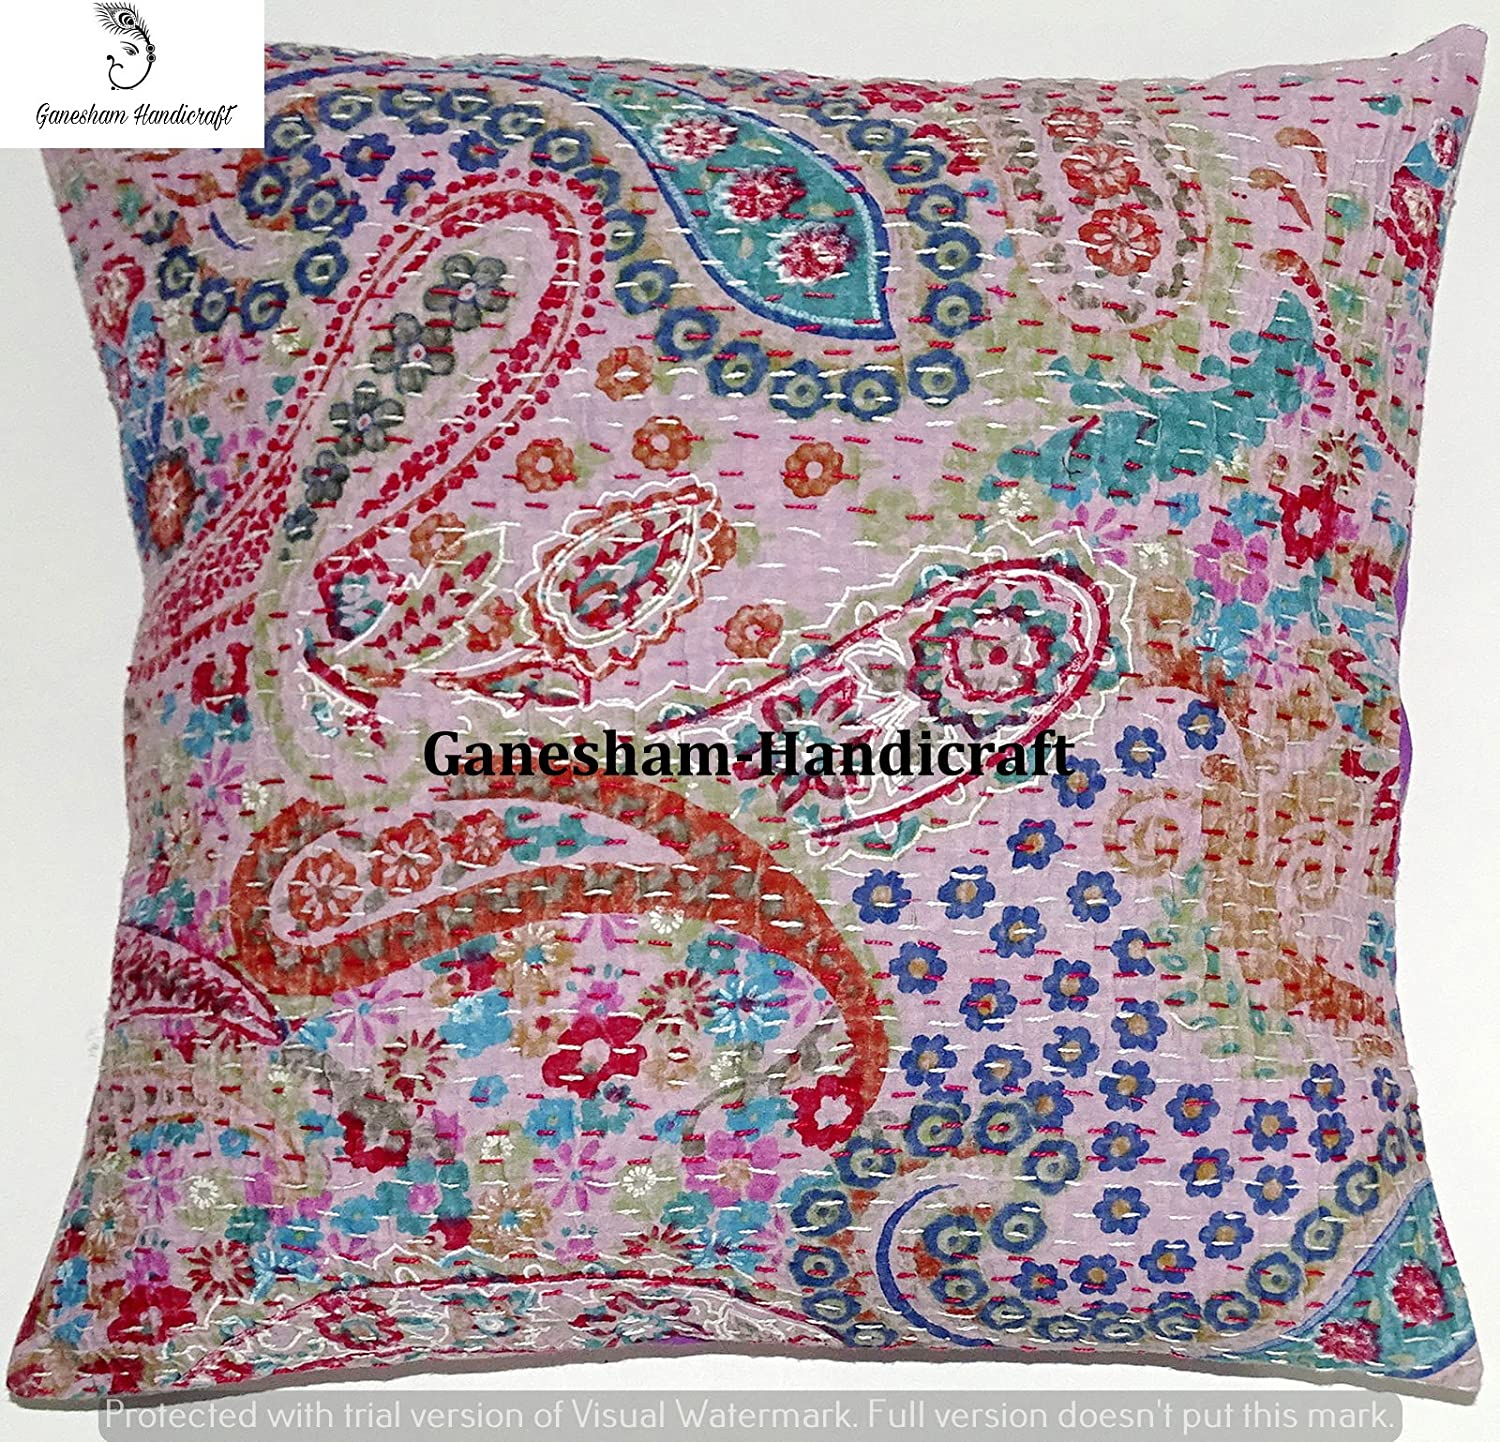 A beautifully handmade pillowcase from